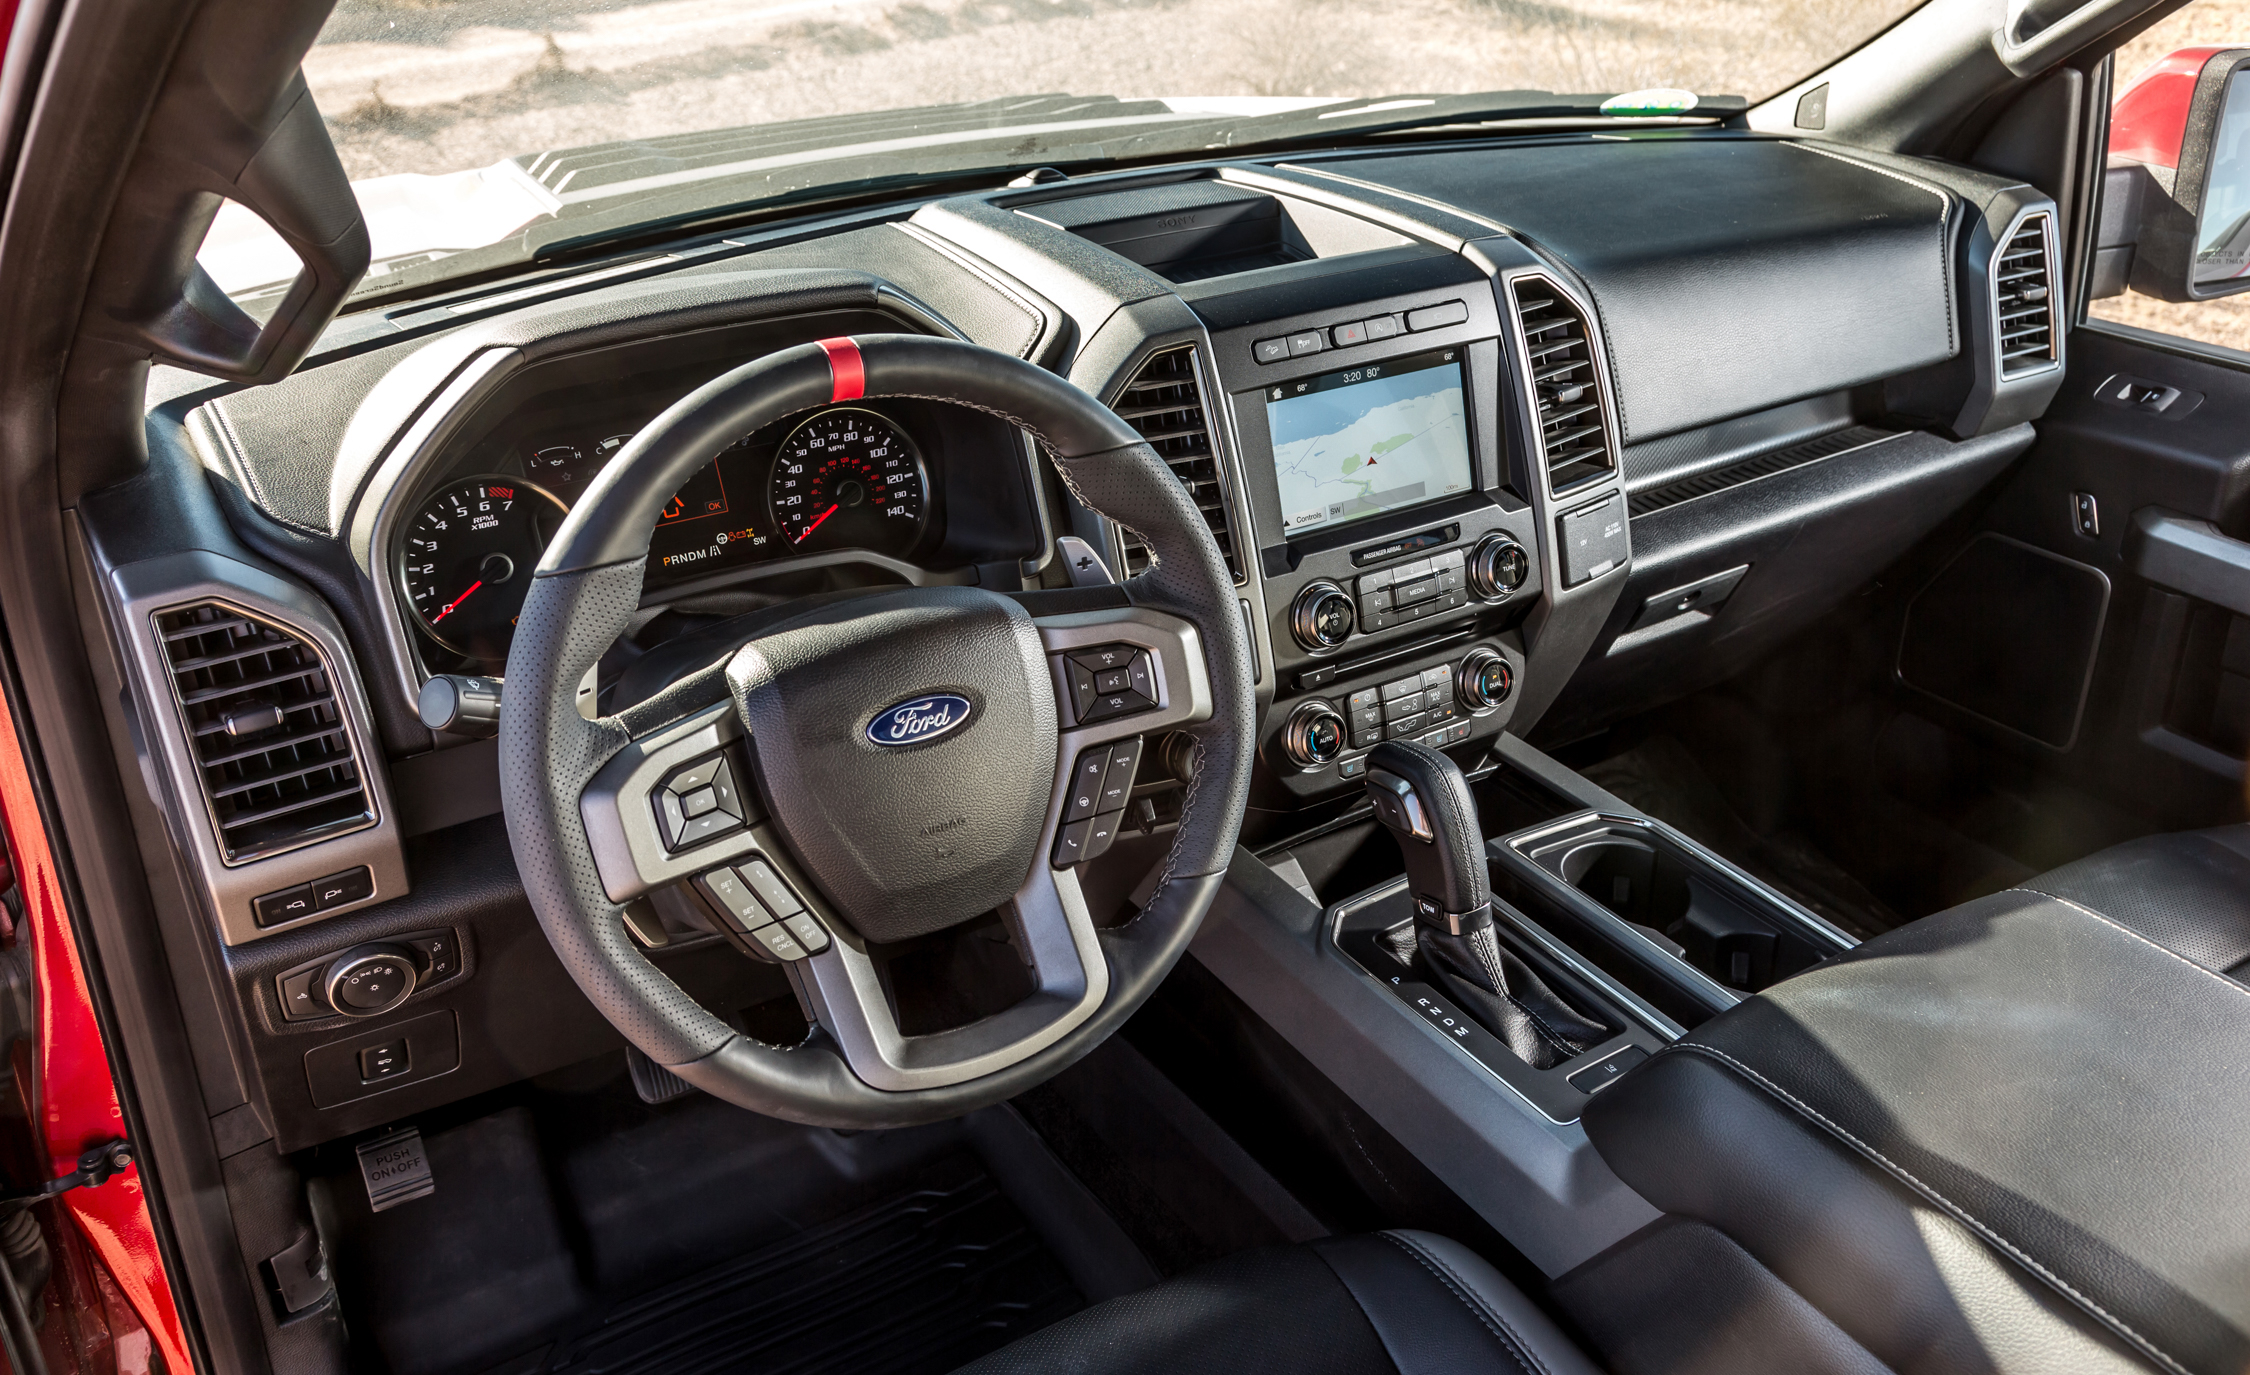 2017 Ford F 150 Raptor SuperCab Interior View Steering And Dash (View 41 of 47)